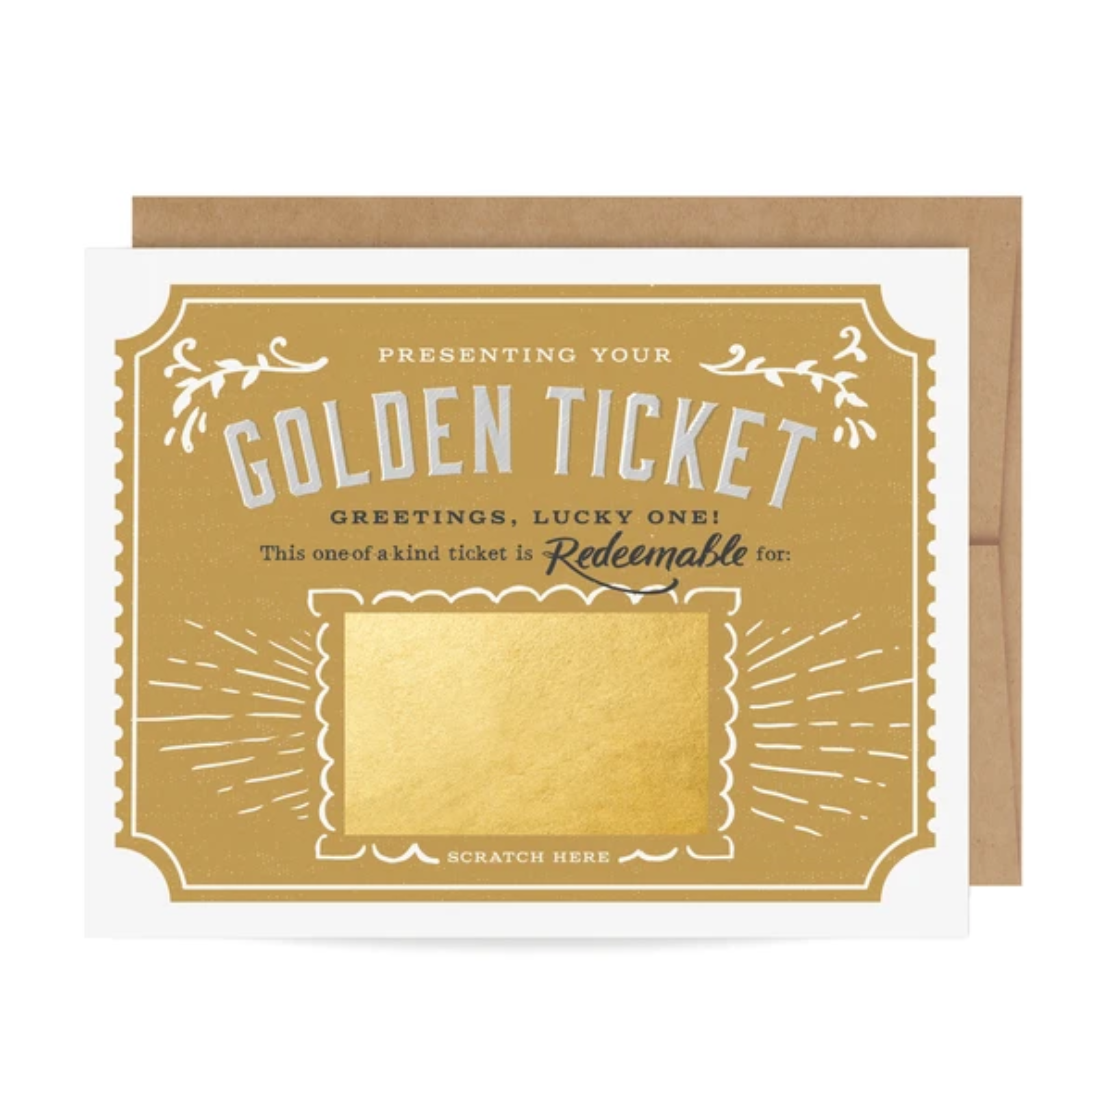 Scratch-Off Card | Golden Ticket - Coco and Duckie